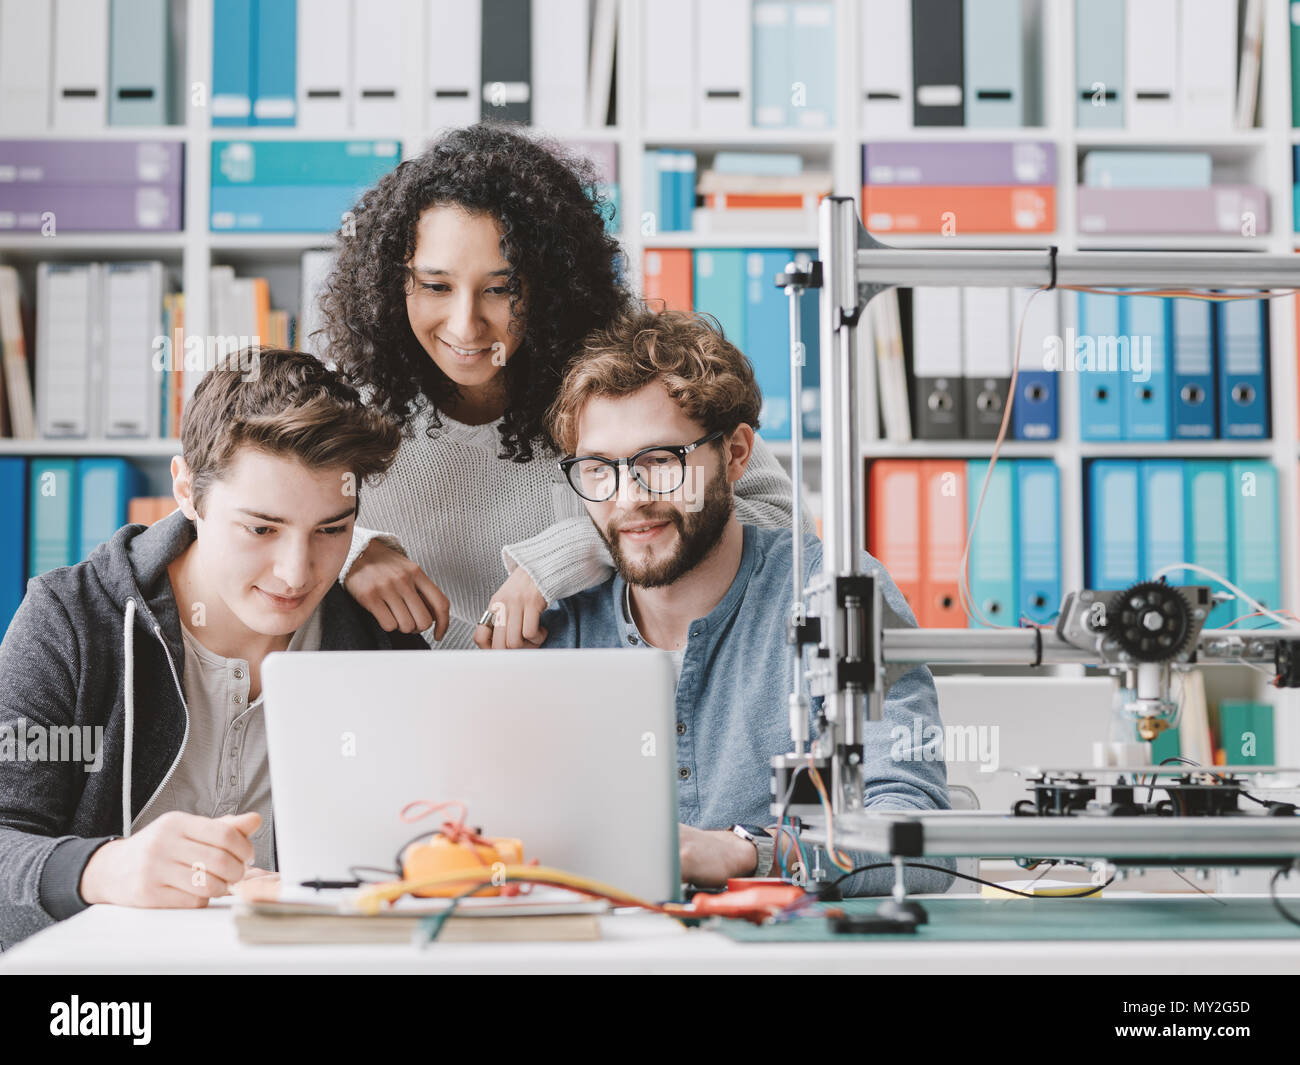 Group of engineering students using a 3D printer and a laptop in the laboratory, technology and learning concept - Stock Image